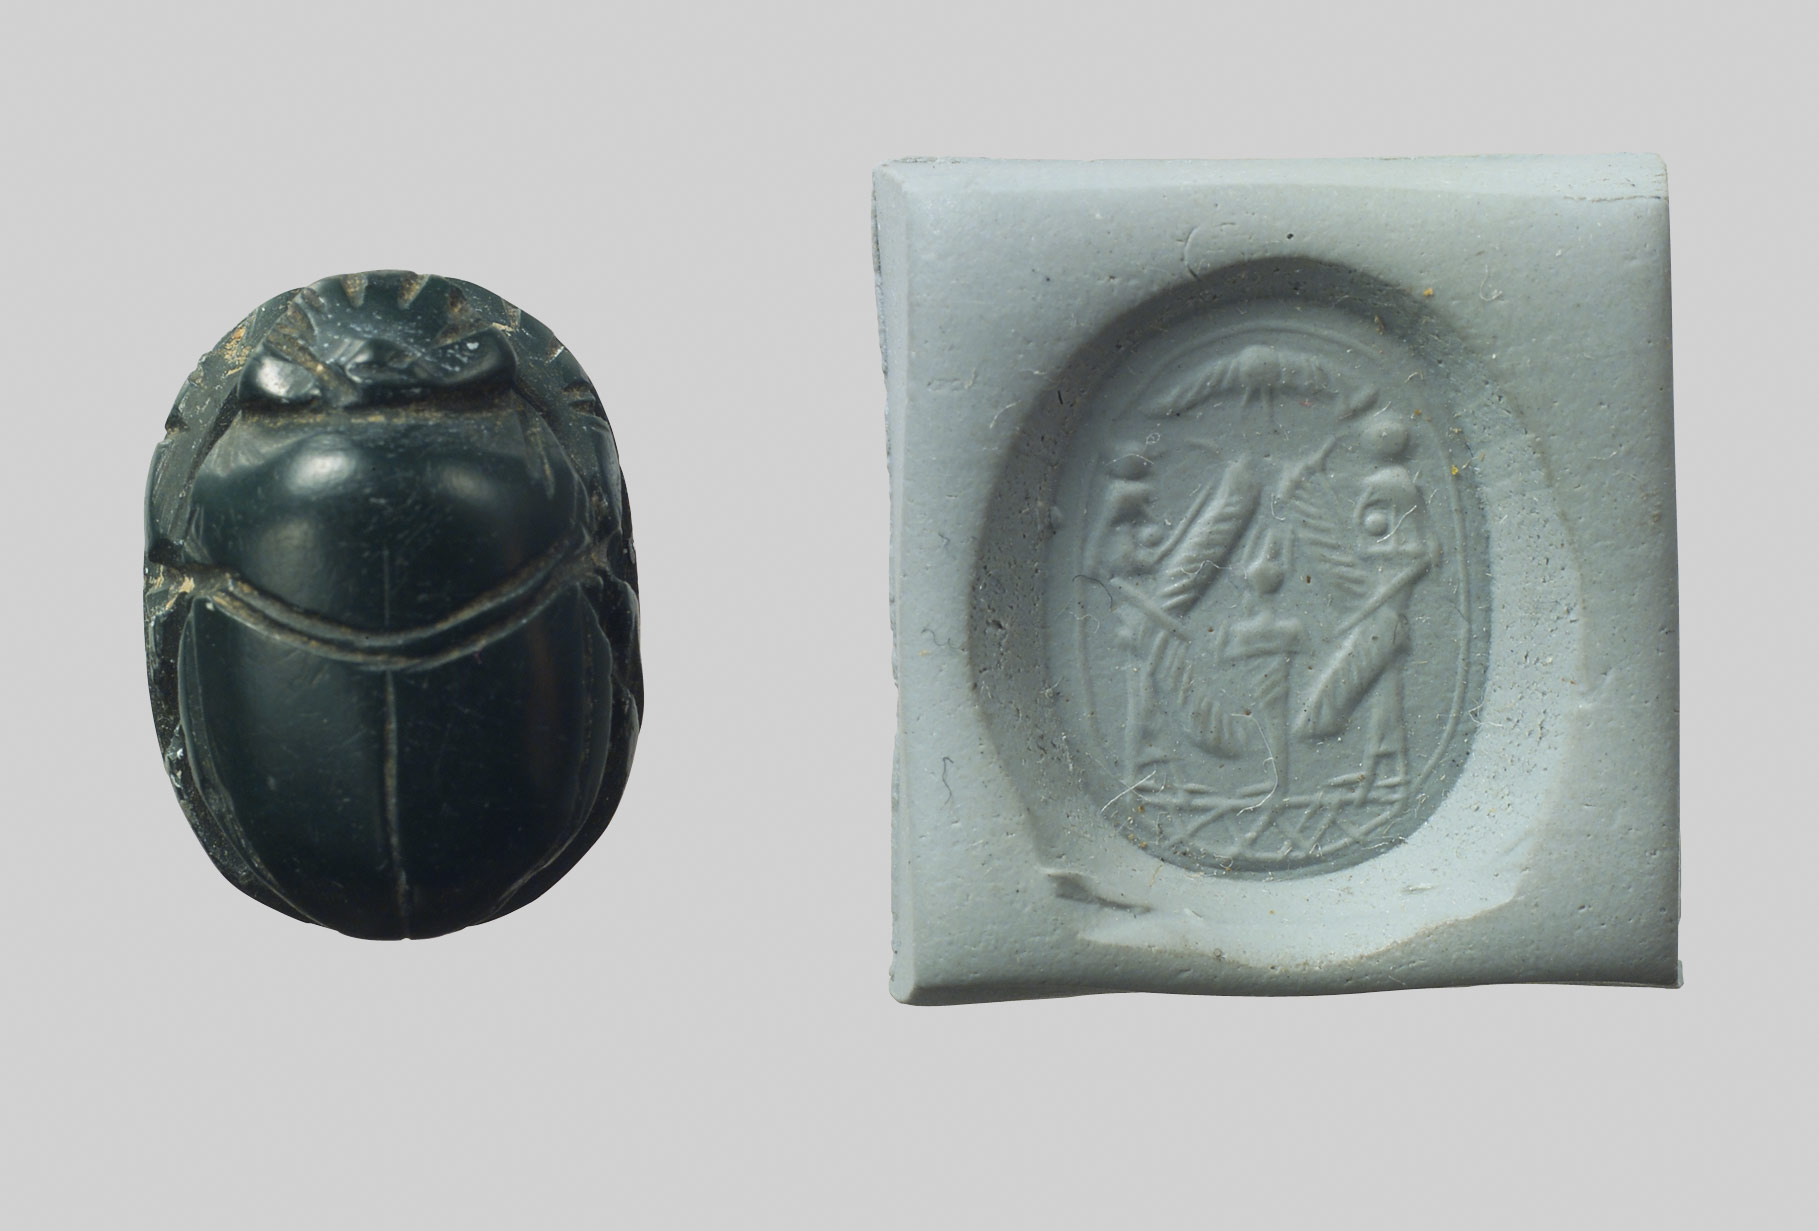 Scarab seal and modern impression: Osiris flanked by protective deities